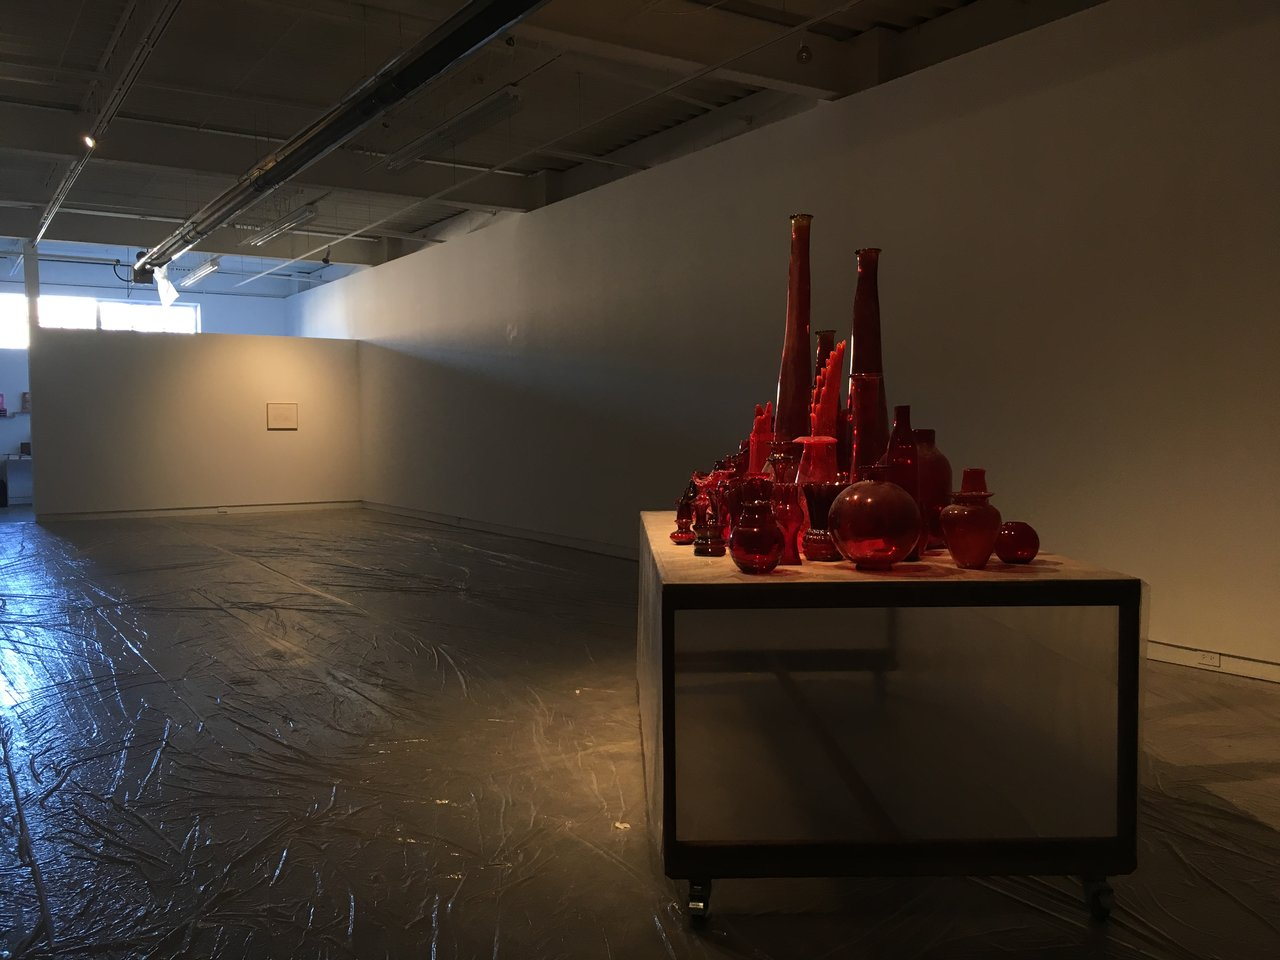 rsz_installation_view_of_we_are_safe_and_all_is_well_in_our_world_2017_scrap_metal_gallery_7